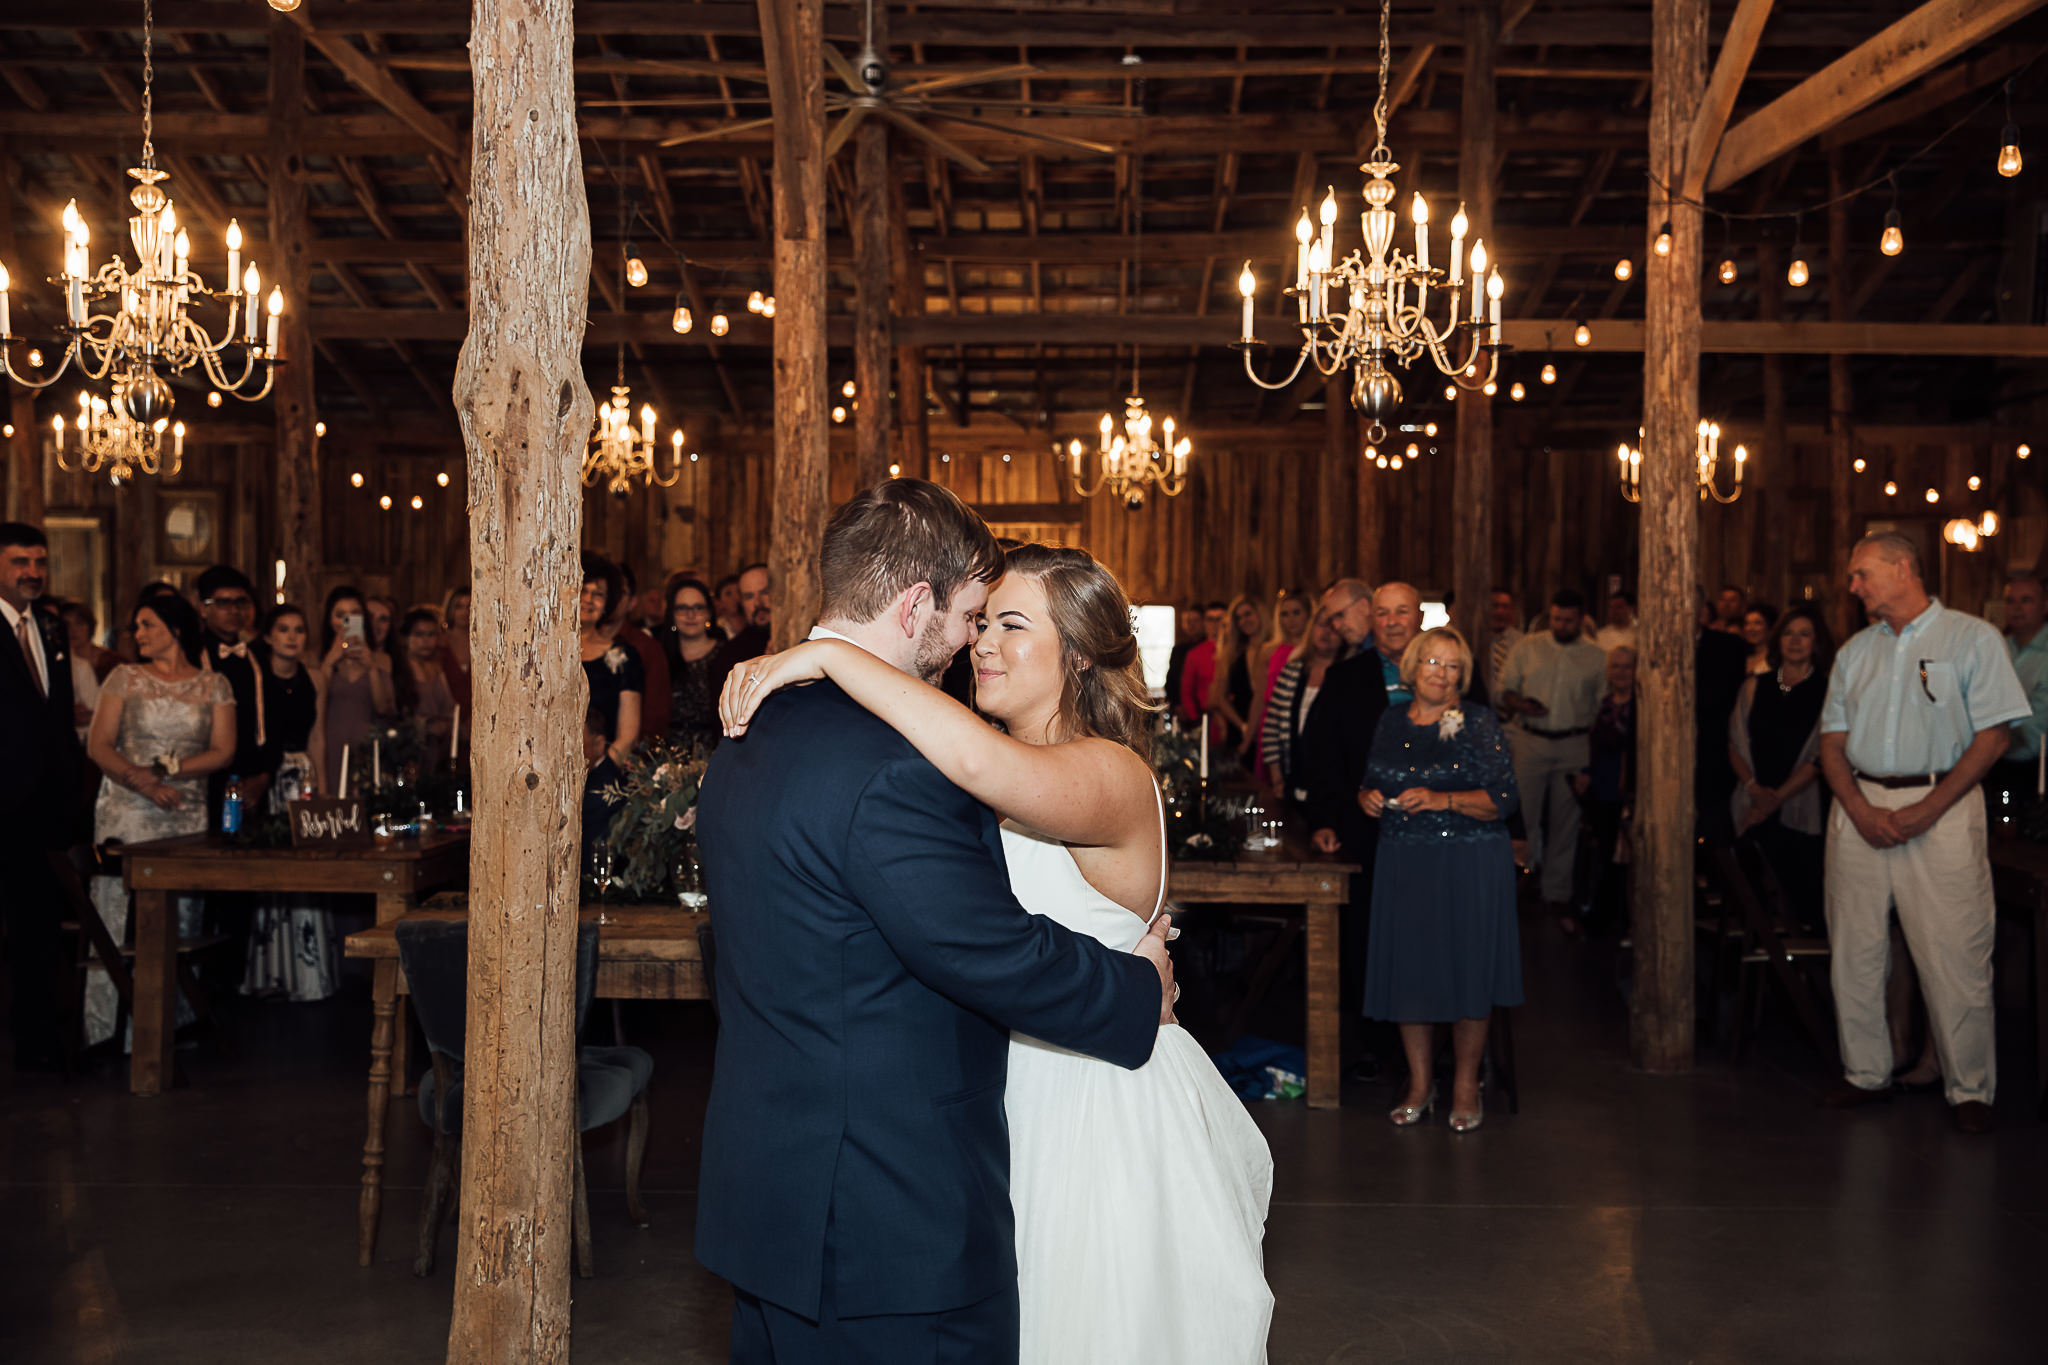 memphis-wedding-photographer-meadow-hill-farms-thewarmtharoundyou (57 of 93).jpg